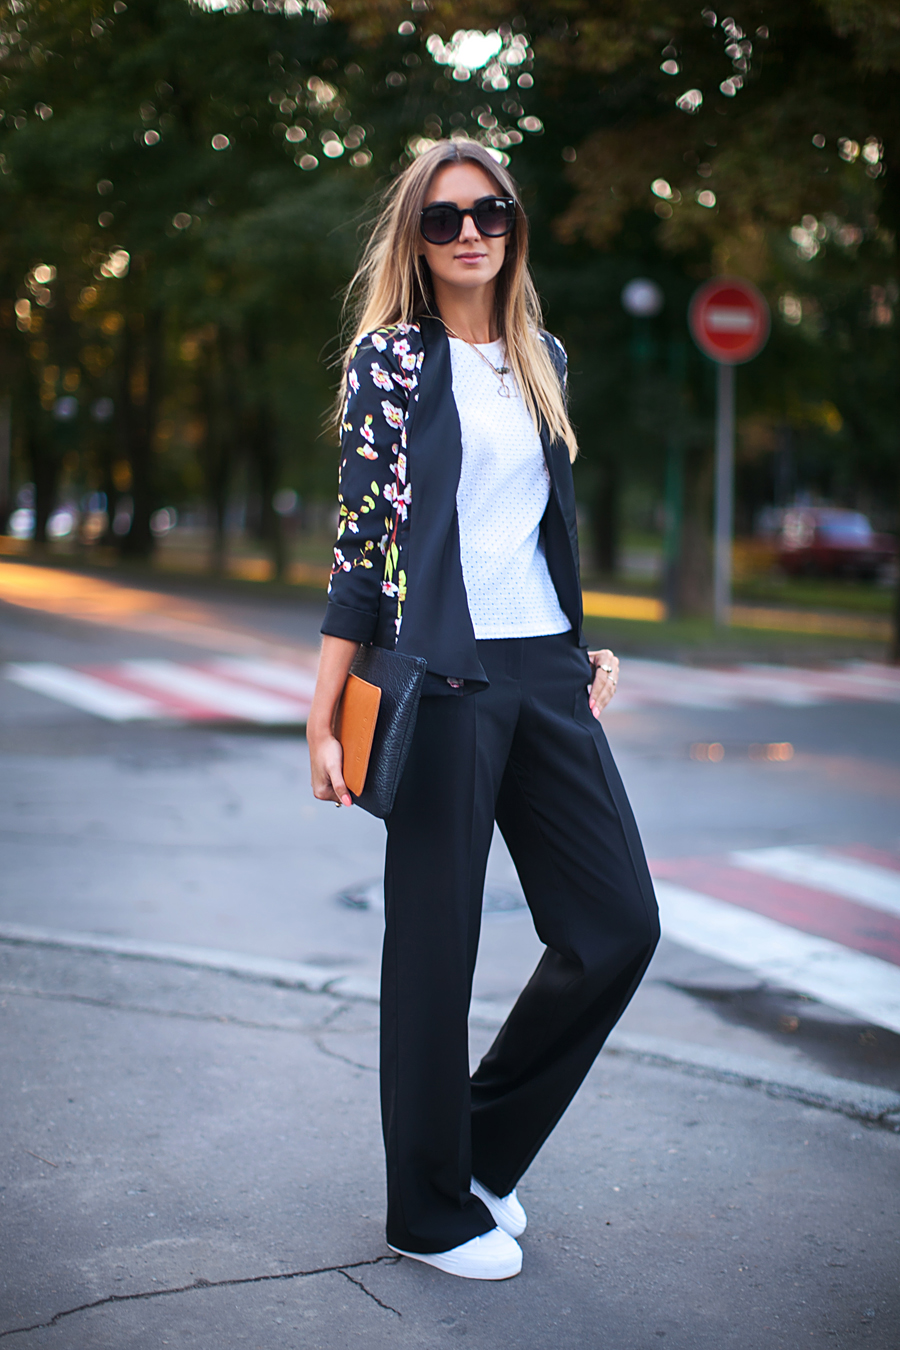 Nika Huk is wearing a floral blazer from Girls on Film, top from Zara, pants and sneakers from Asos, clutch from Clare Vivier, and sunglasses from Zero UV